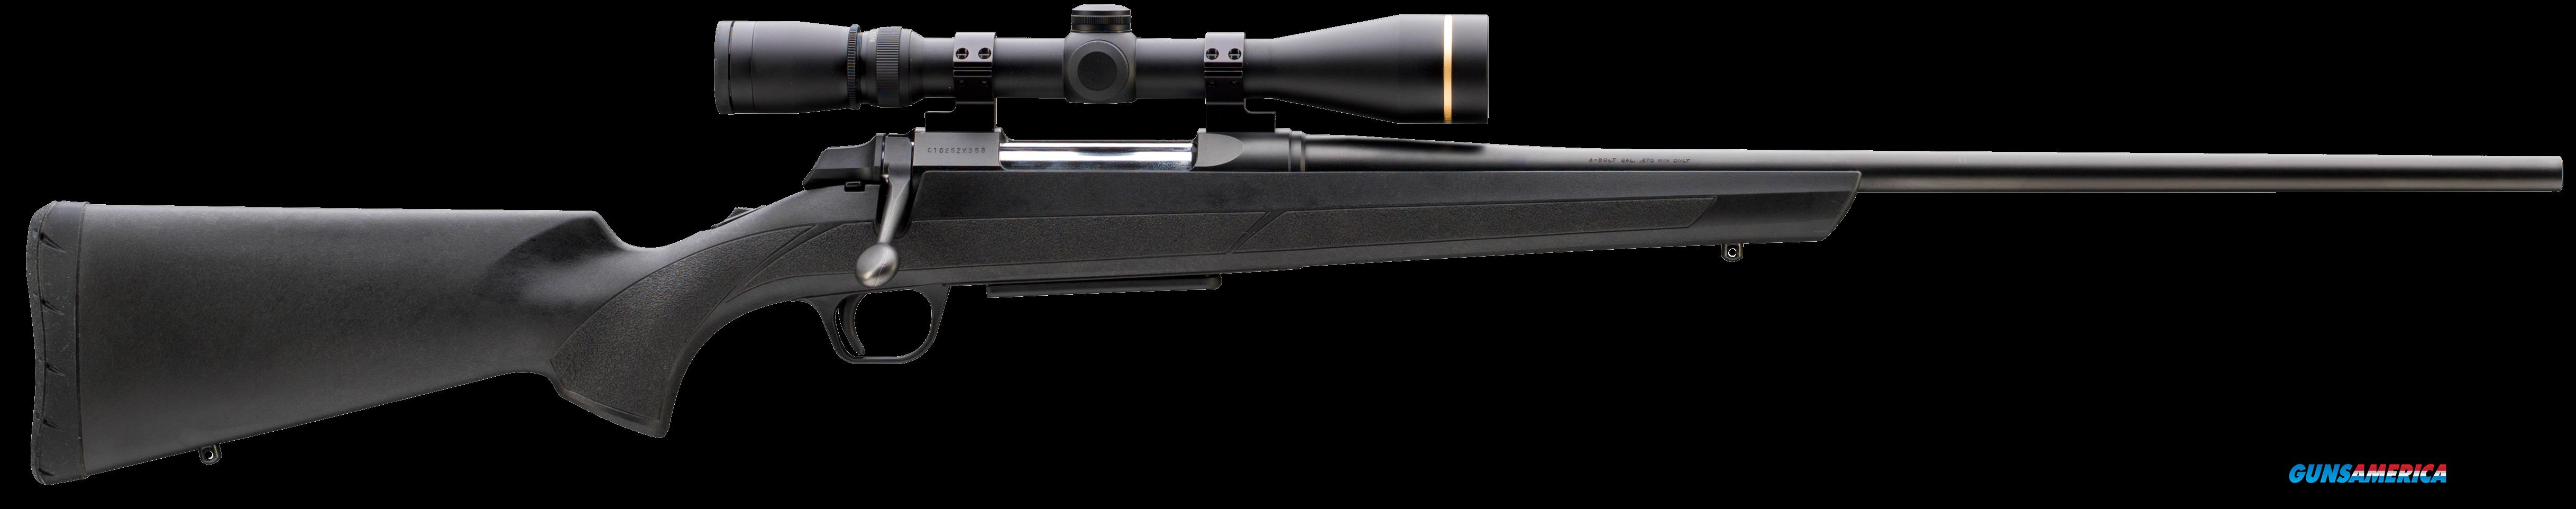 "Browning 035800211 AB3 Composite Stalker Bolt 243 Winchester 22"" 5+1 Black Synthetic Stock Blued  Guns > Rifles > Browning Rifles > Bolt Action"